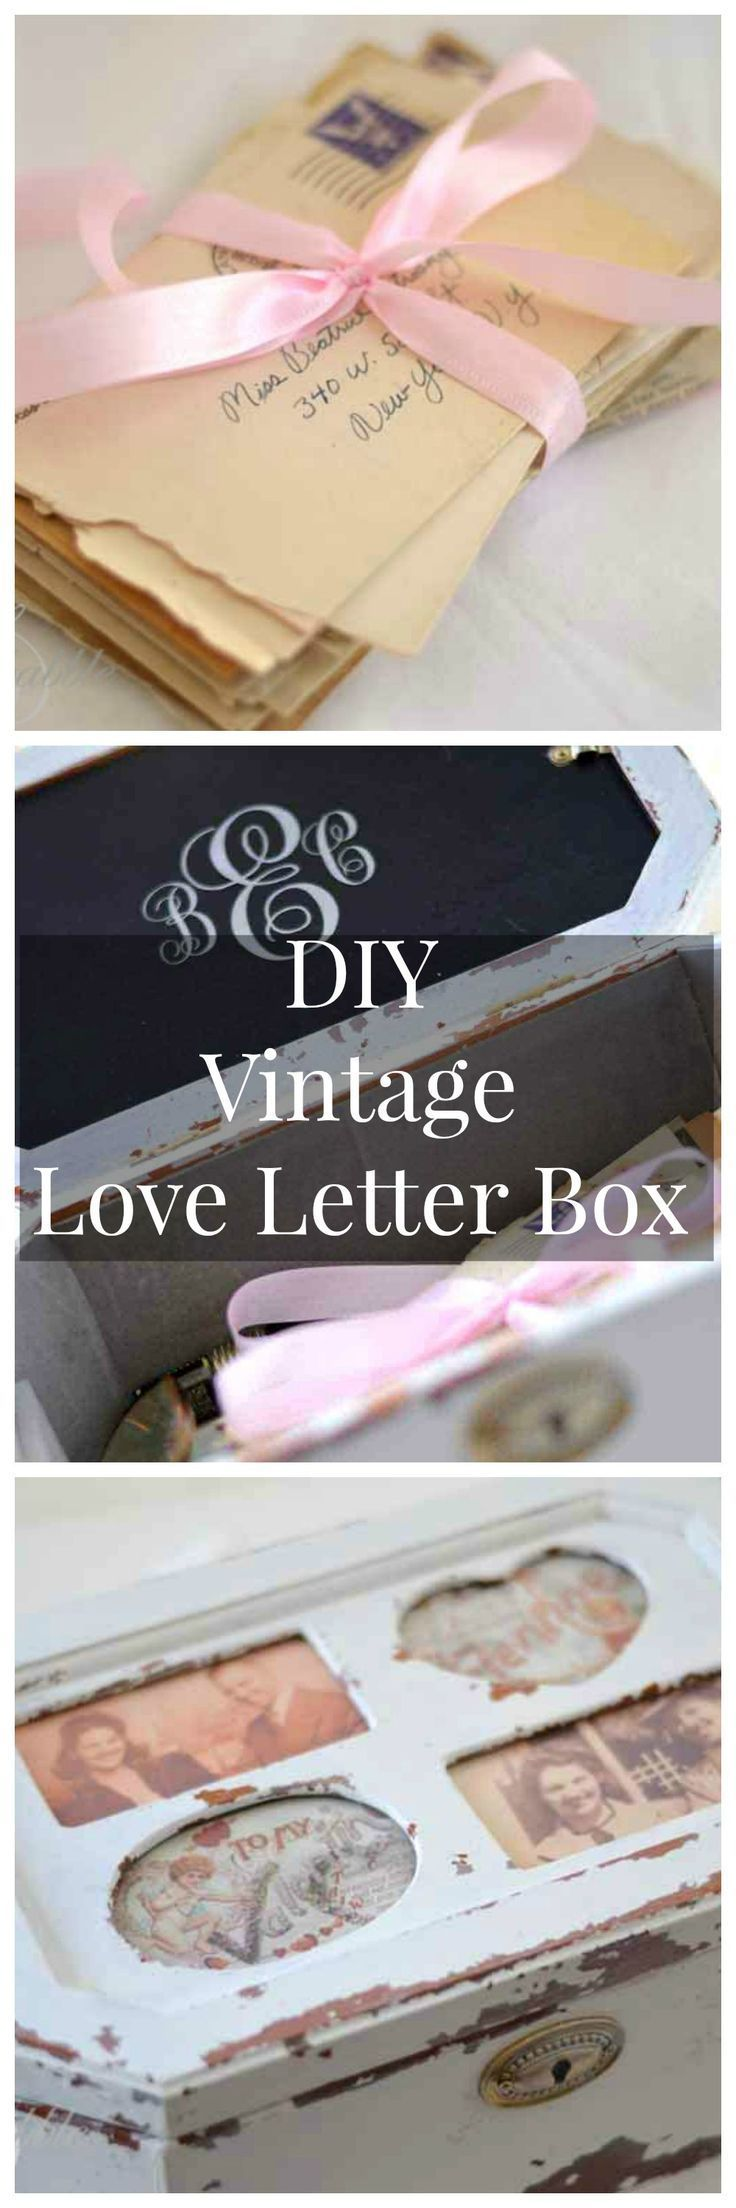 DIY Vintage Love Letter Box made from an old jewelry box.